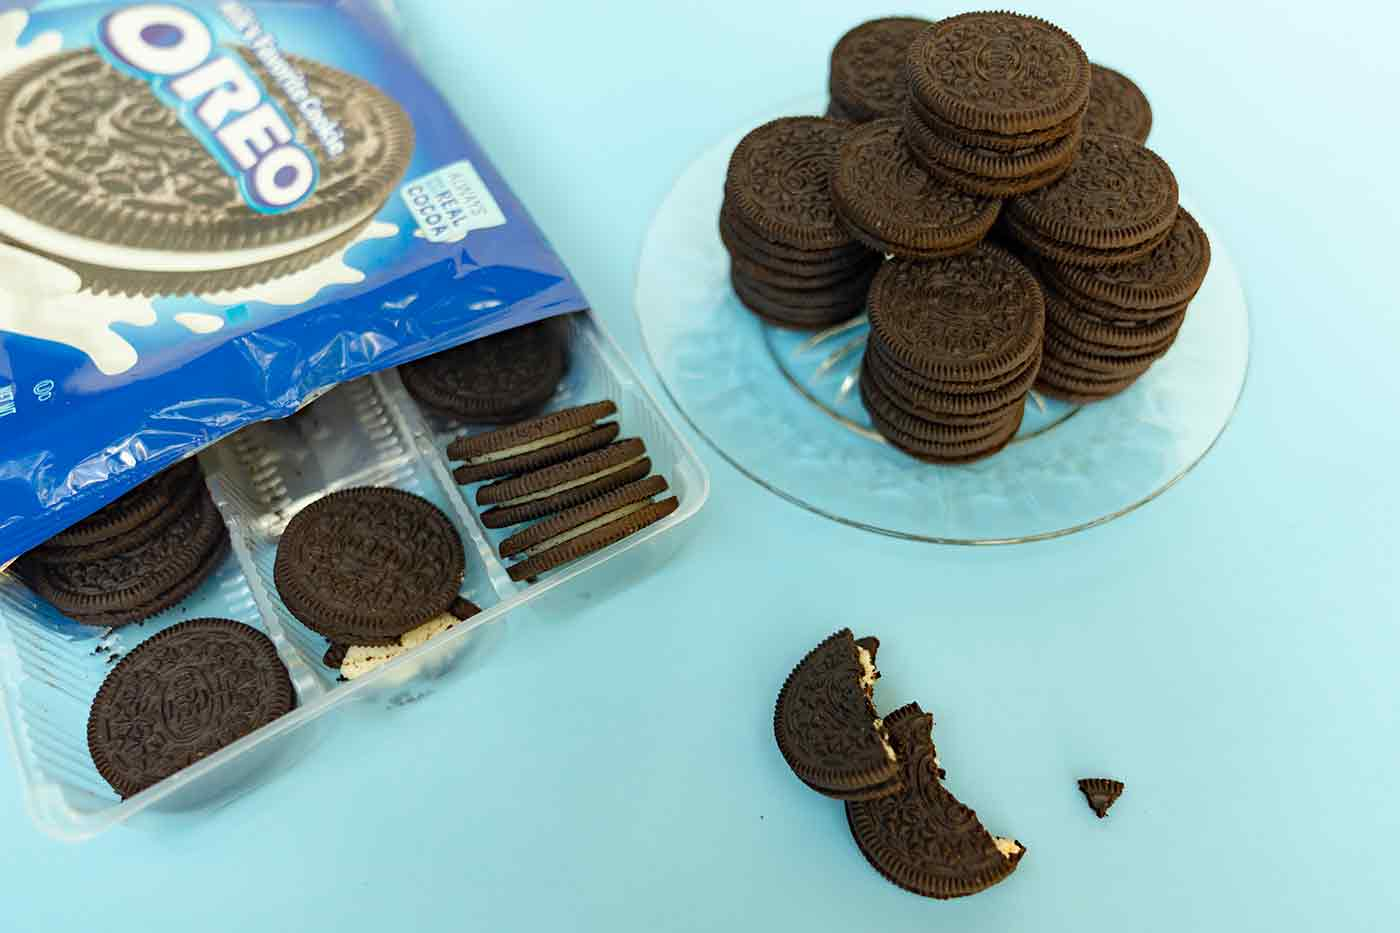 vegan Oreo cookies on a blue tabletop